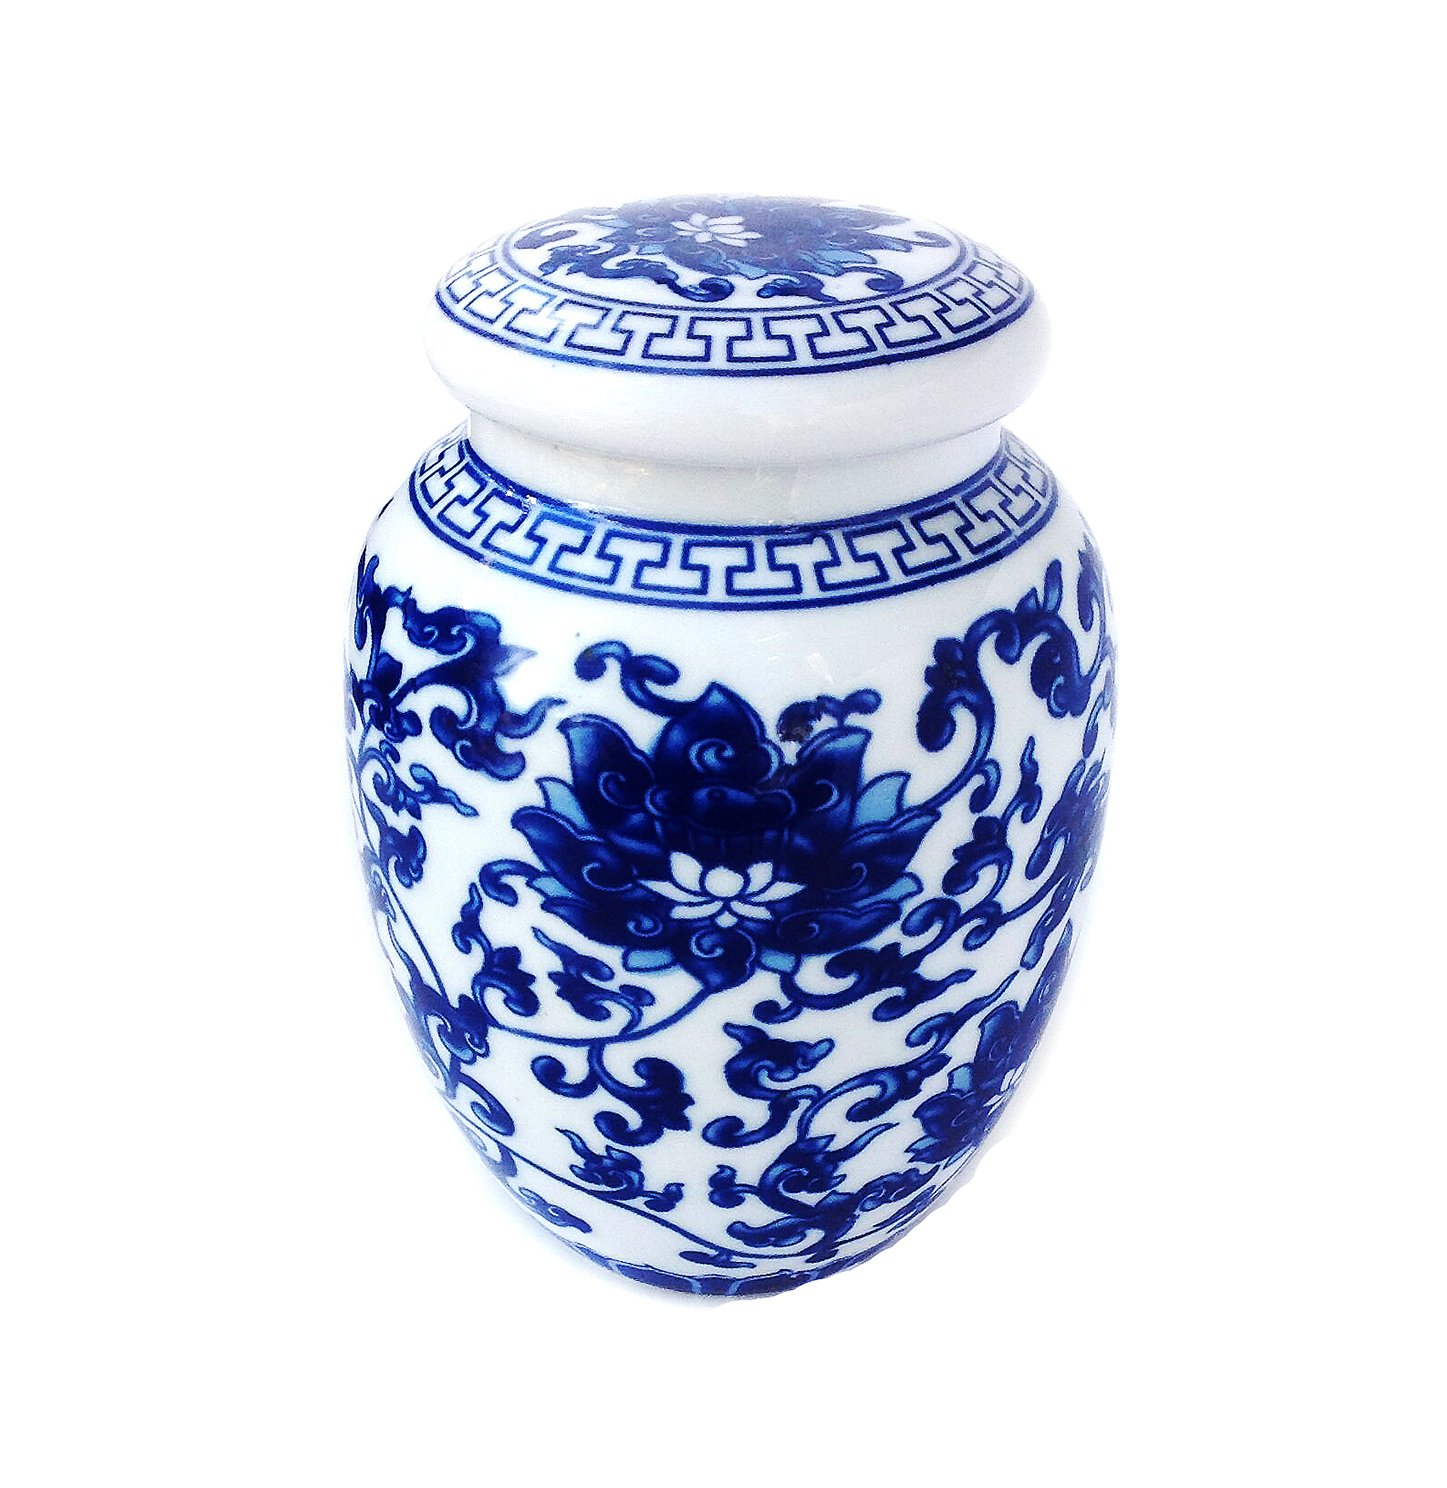 Decorative Blue and White Lotus Pattern Porcelain Tea Storage Container or Display Unit